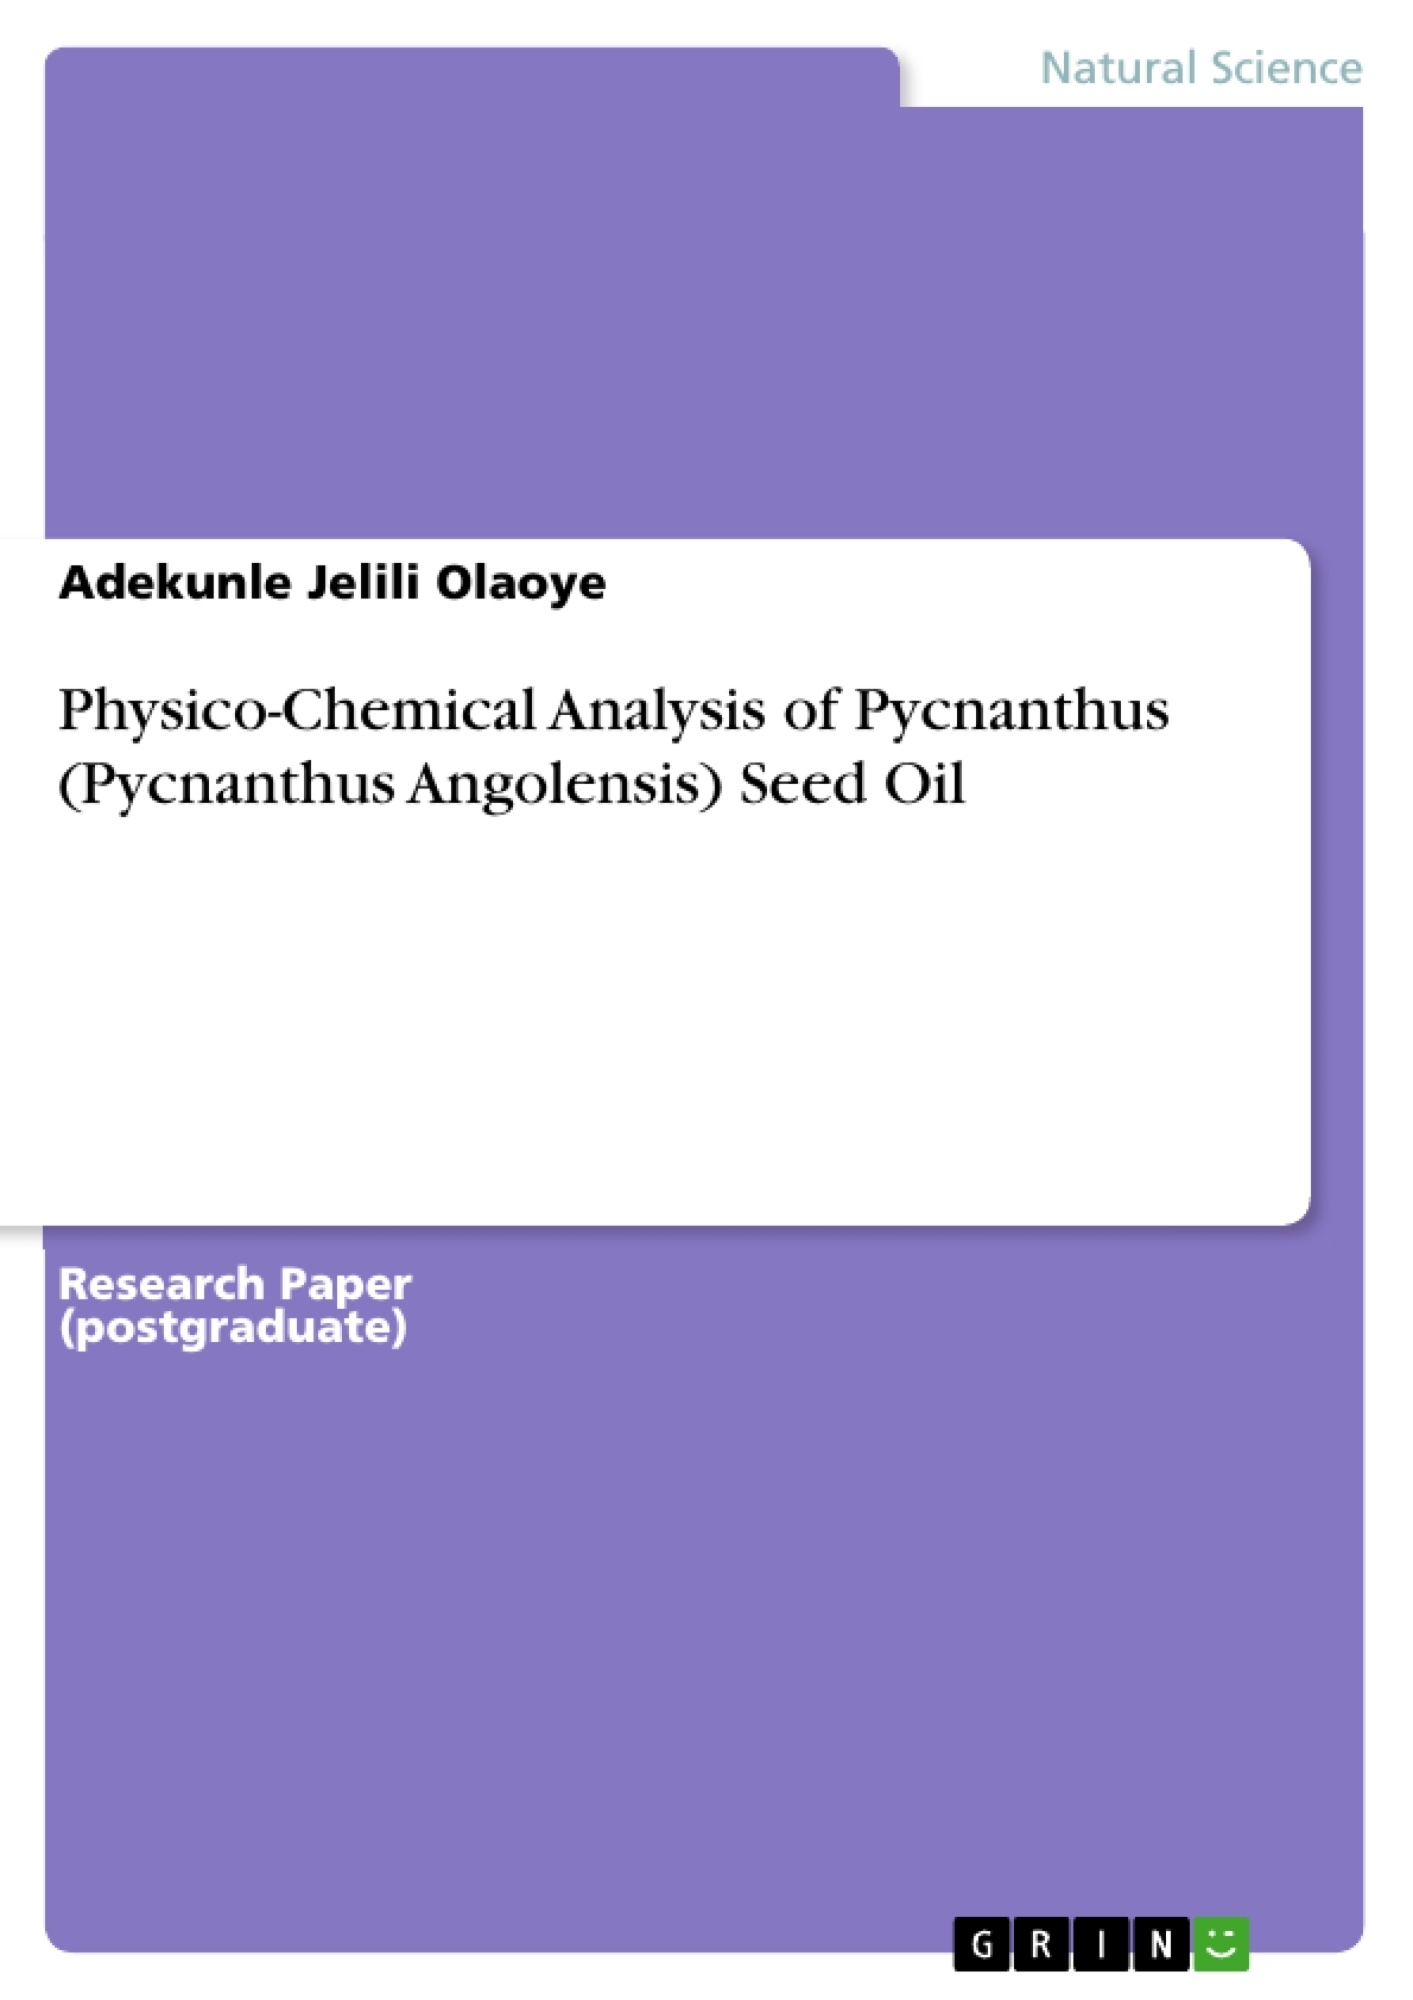 Title: Physico-Chemical Analysis of Pycnanthus (Pycnanthus Angolensis) Seed Oil